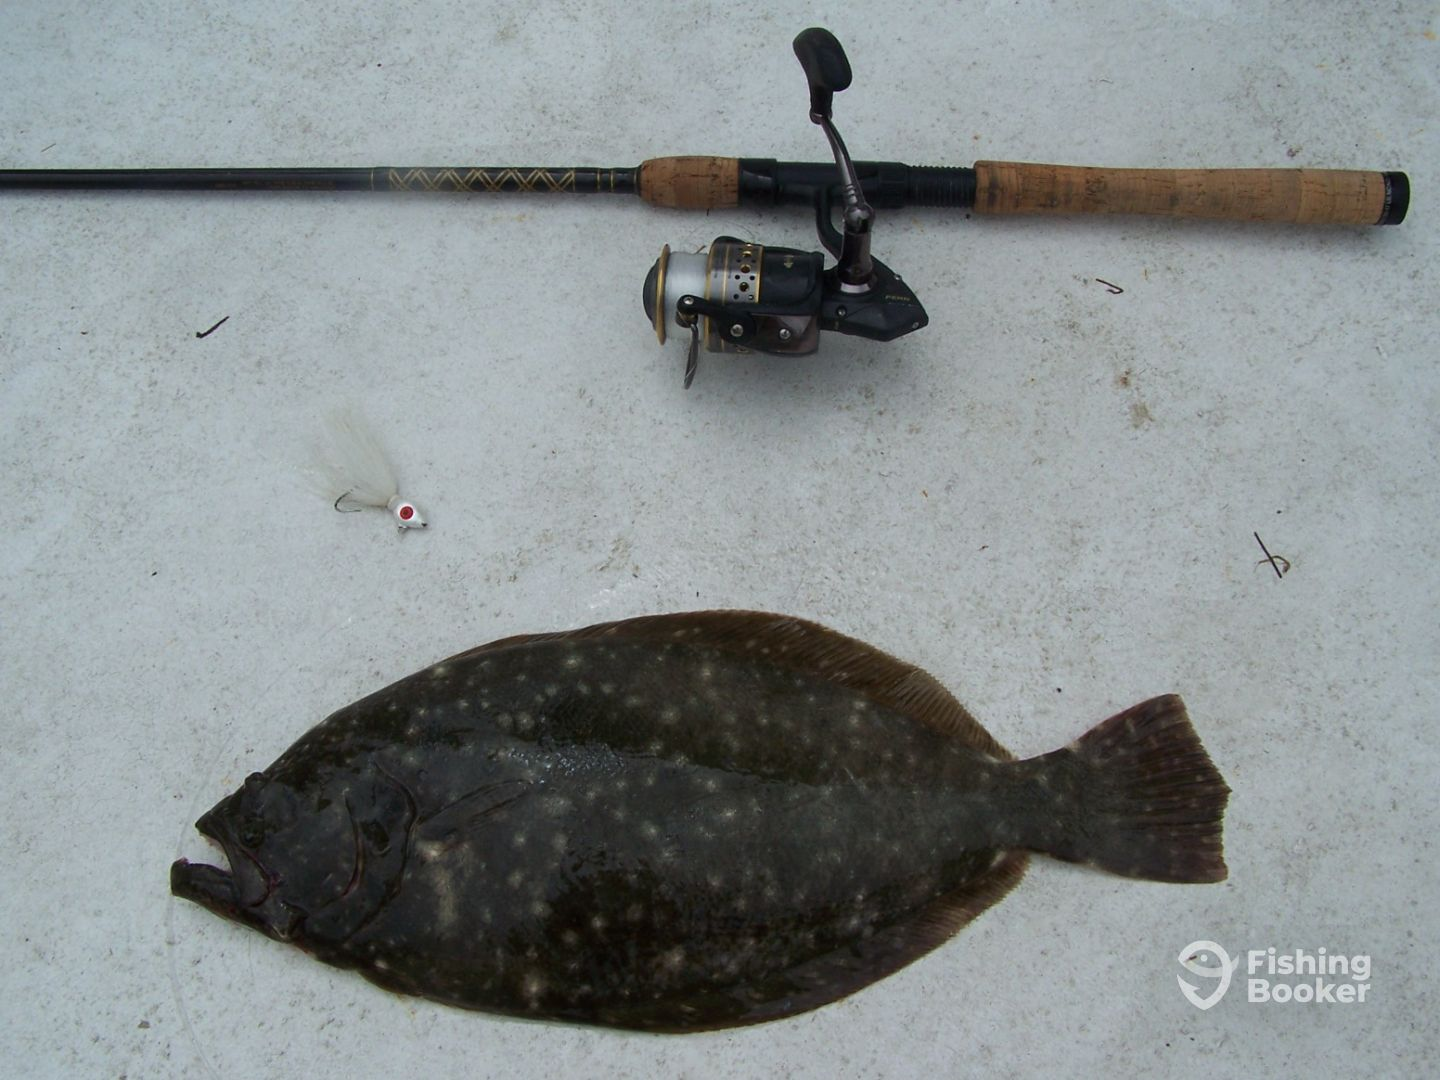 Southern Flounder Caught on a Jig